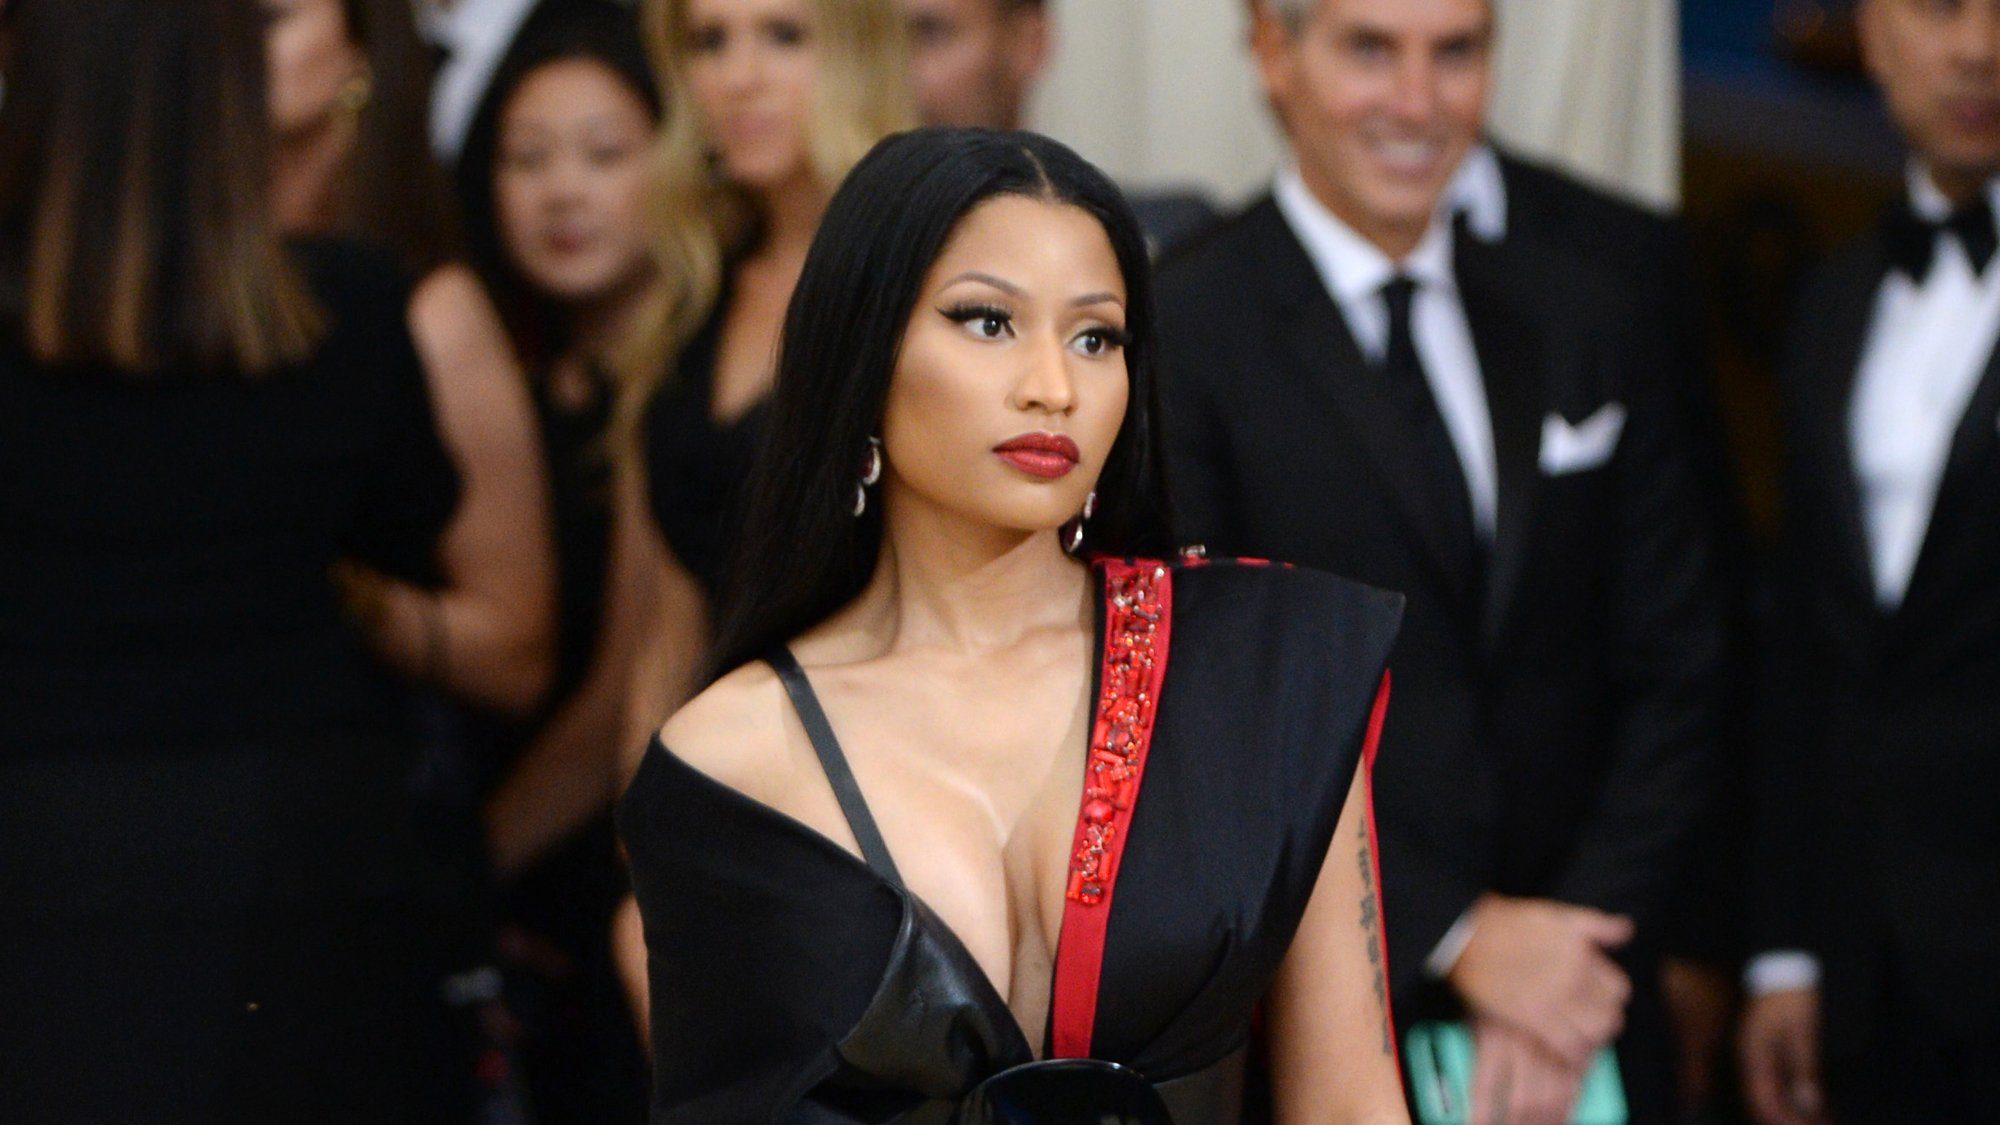 Nicki Minaj just revealed something very unexpected about her love life https://t.co/2351AdcBMY https://t.co/G6H0BTHeVy